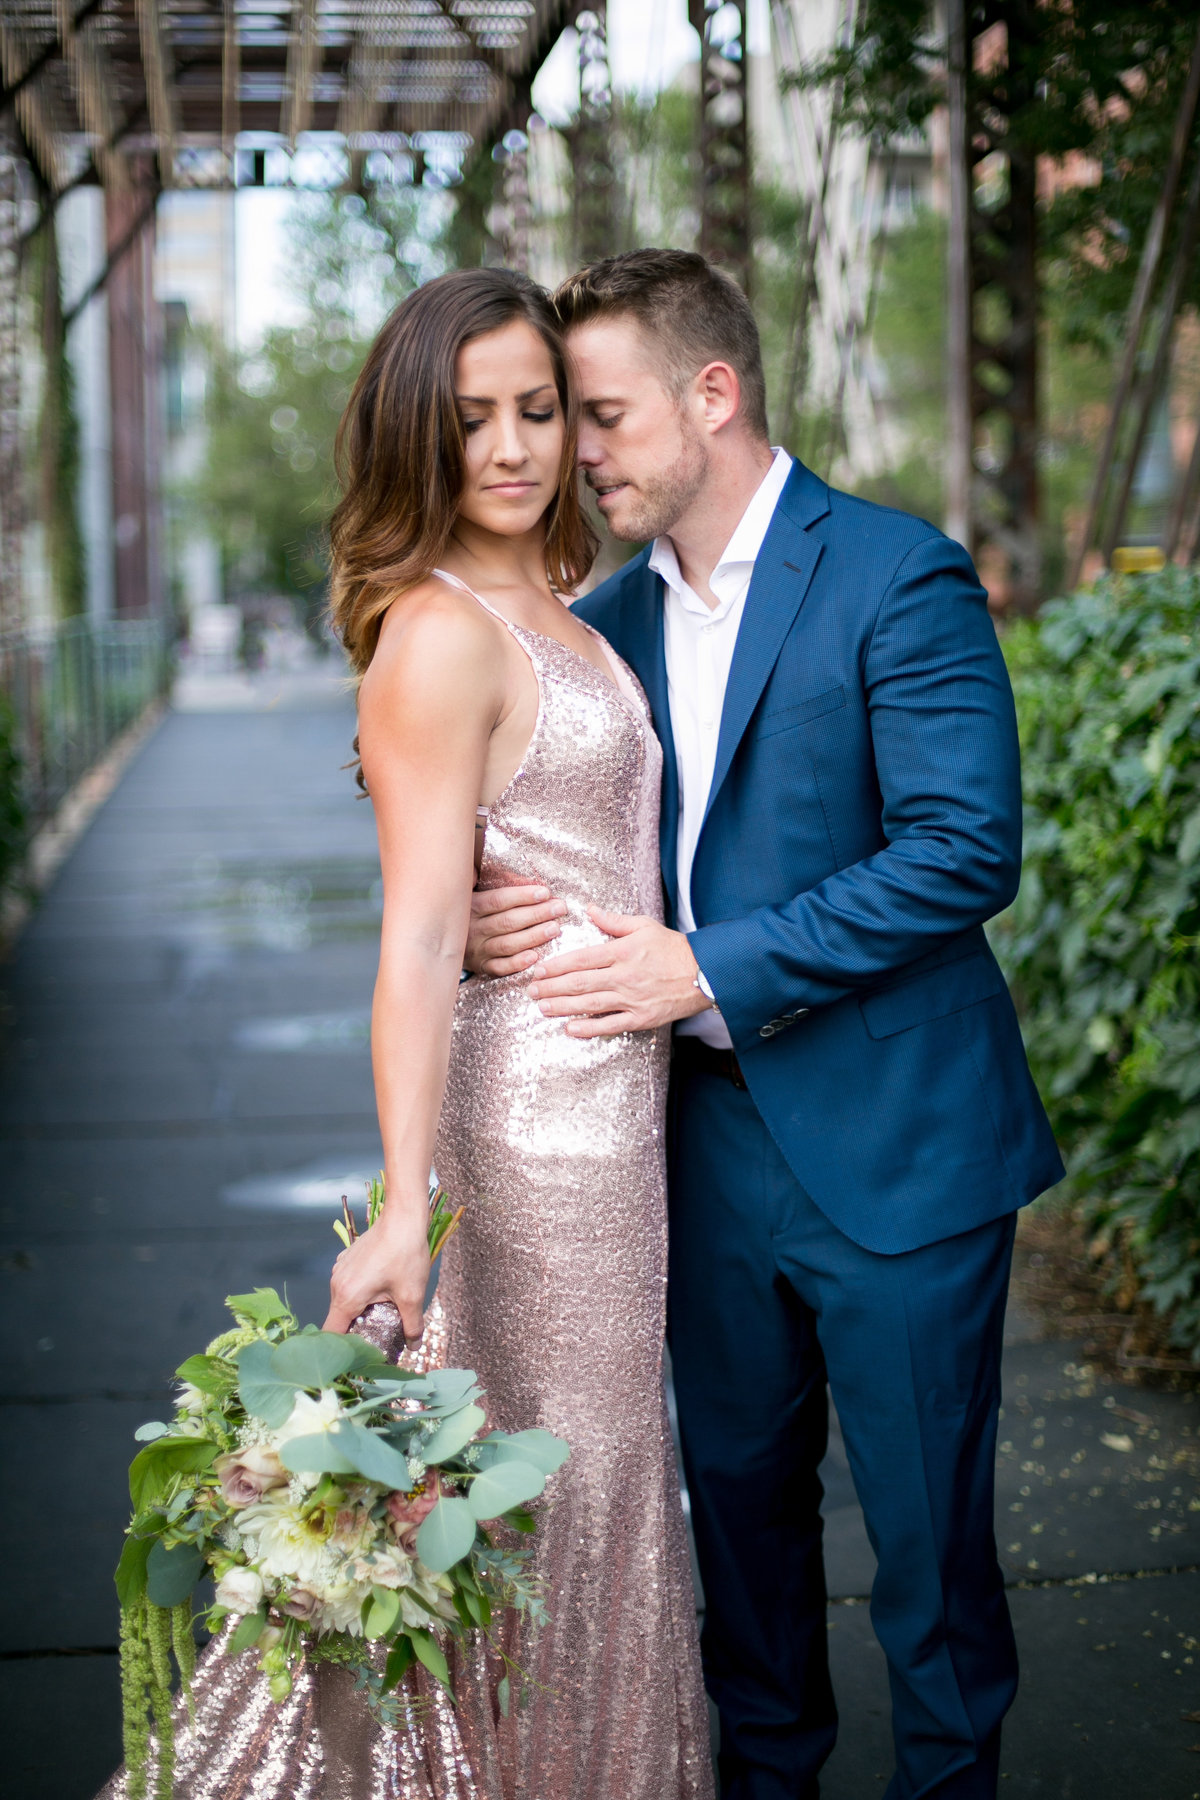 Sequin dress for engagement  photos